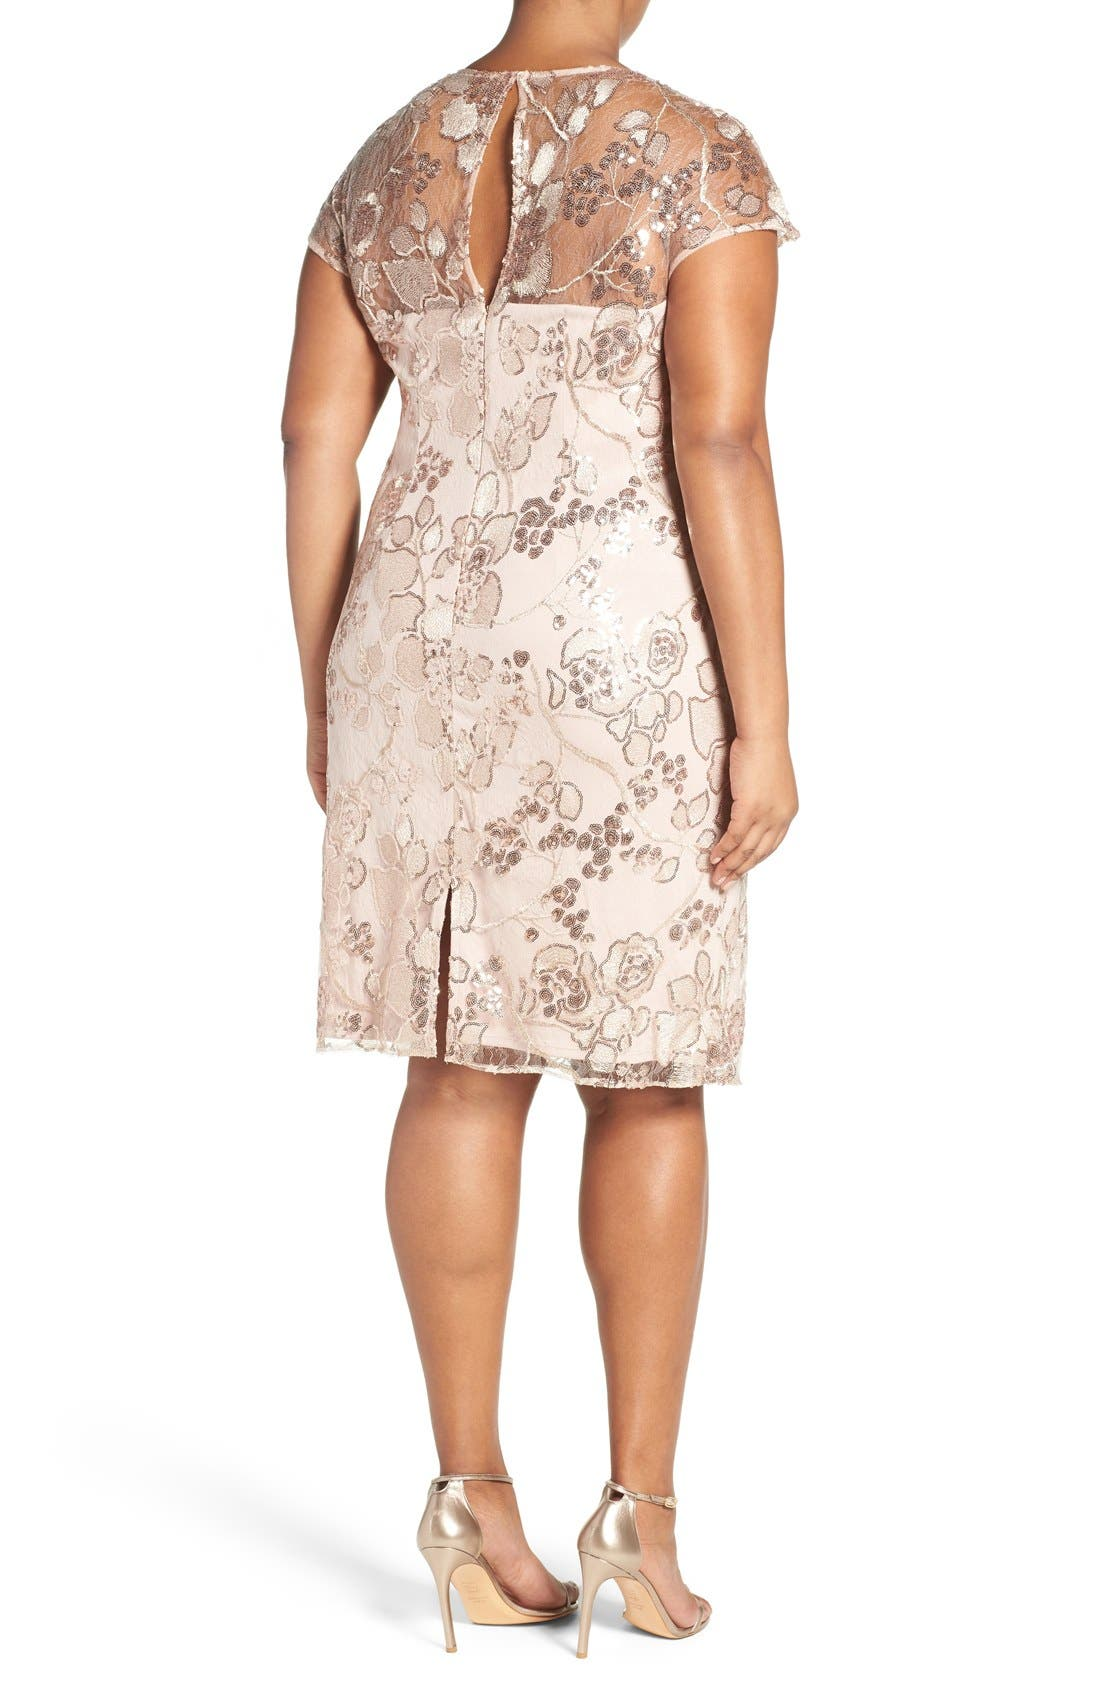 Embellished Embroidered Lace Cocktail Dress,                             Alternate thumbnail 2, color,                             Almond